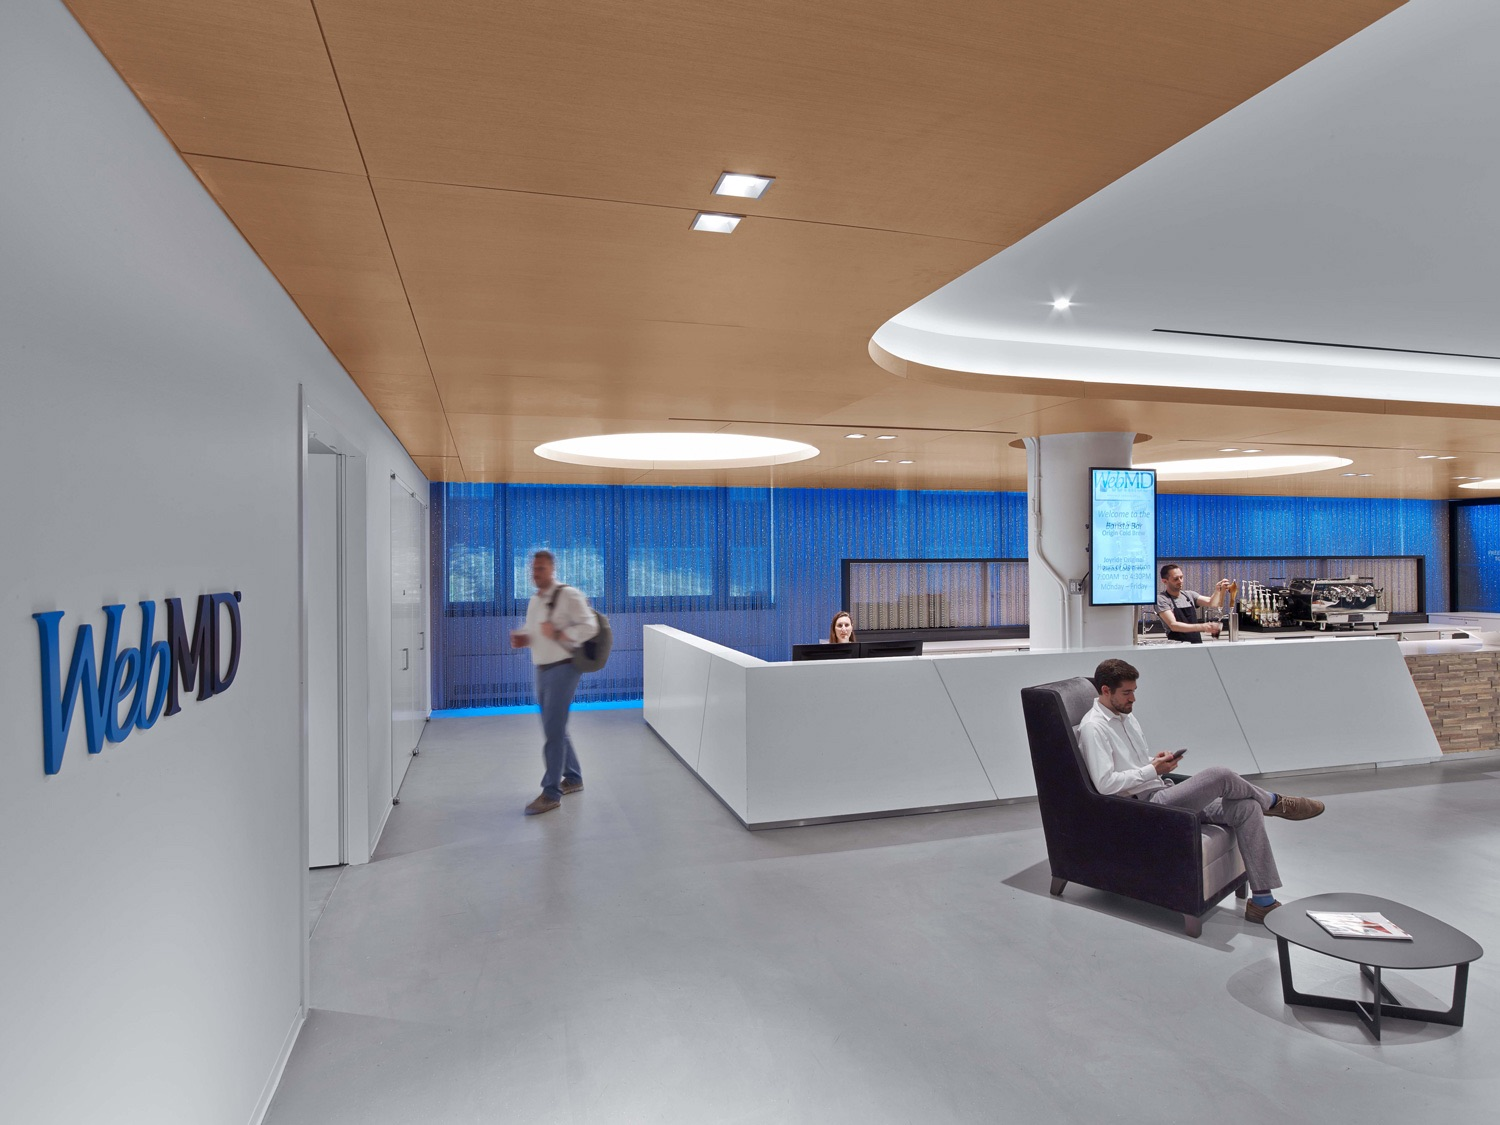 web-md-nyc-office-27